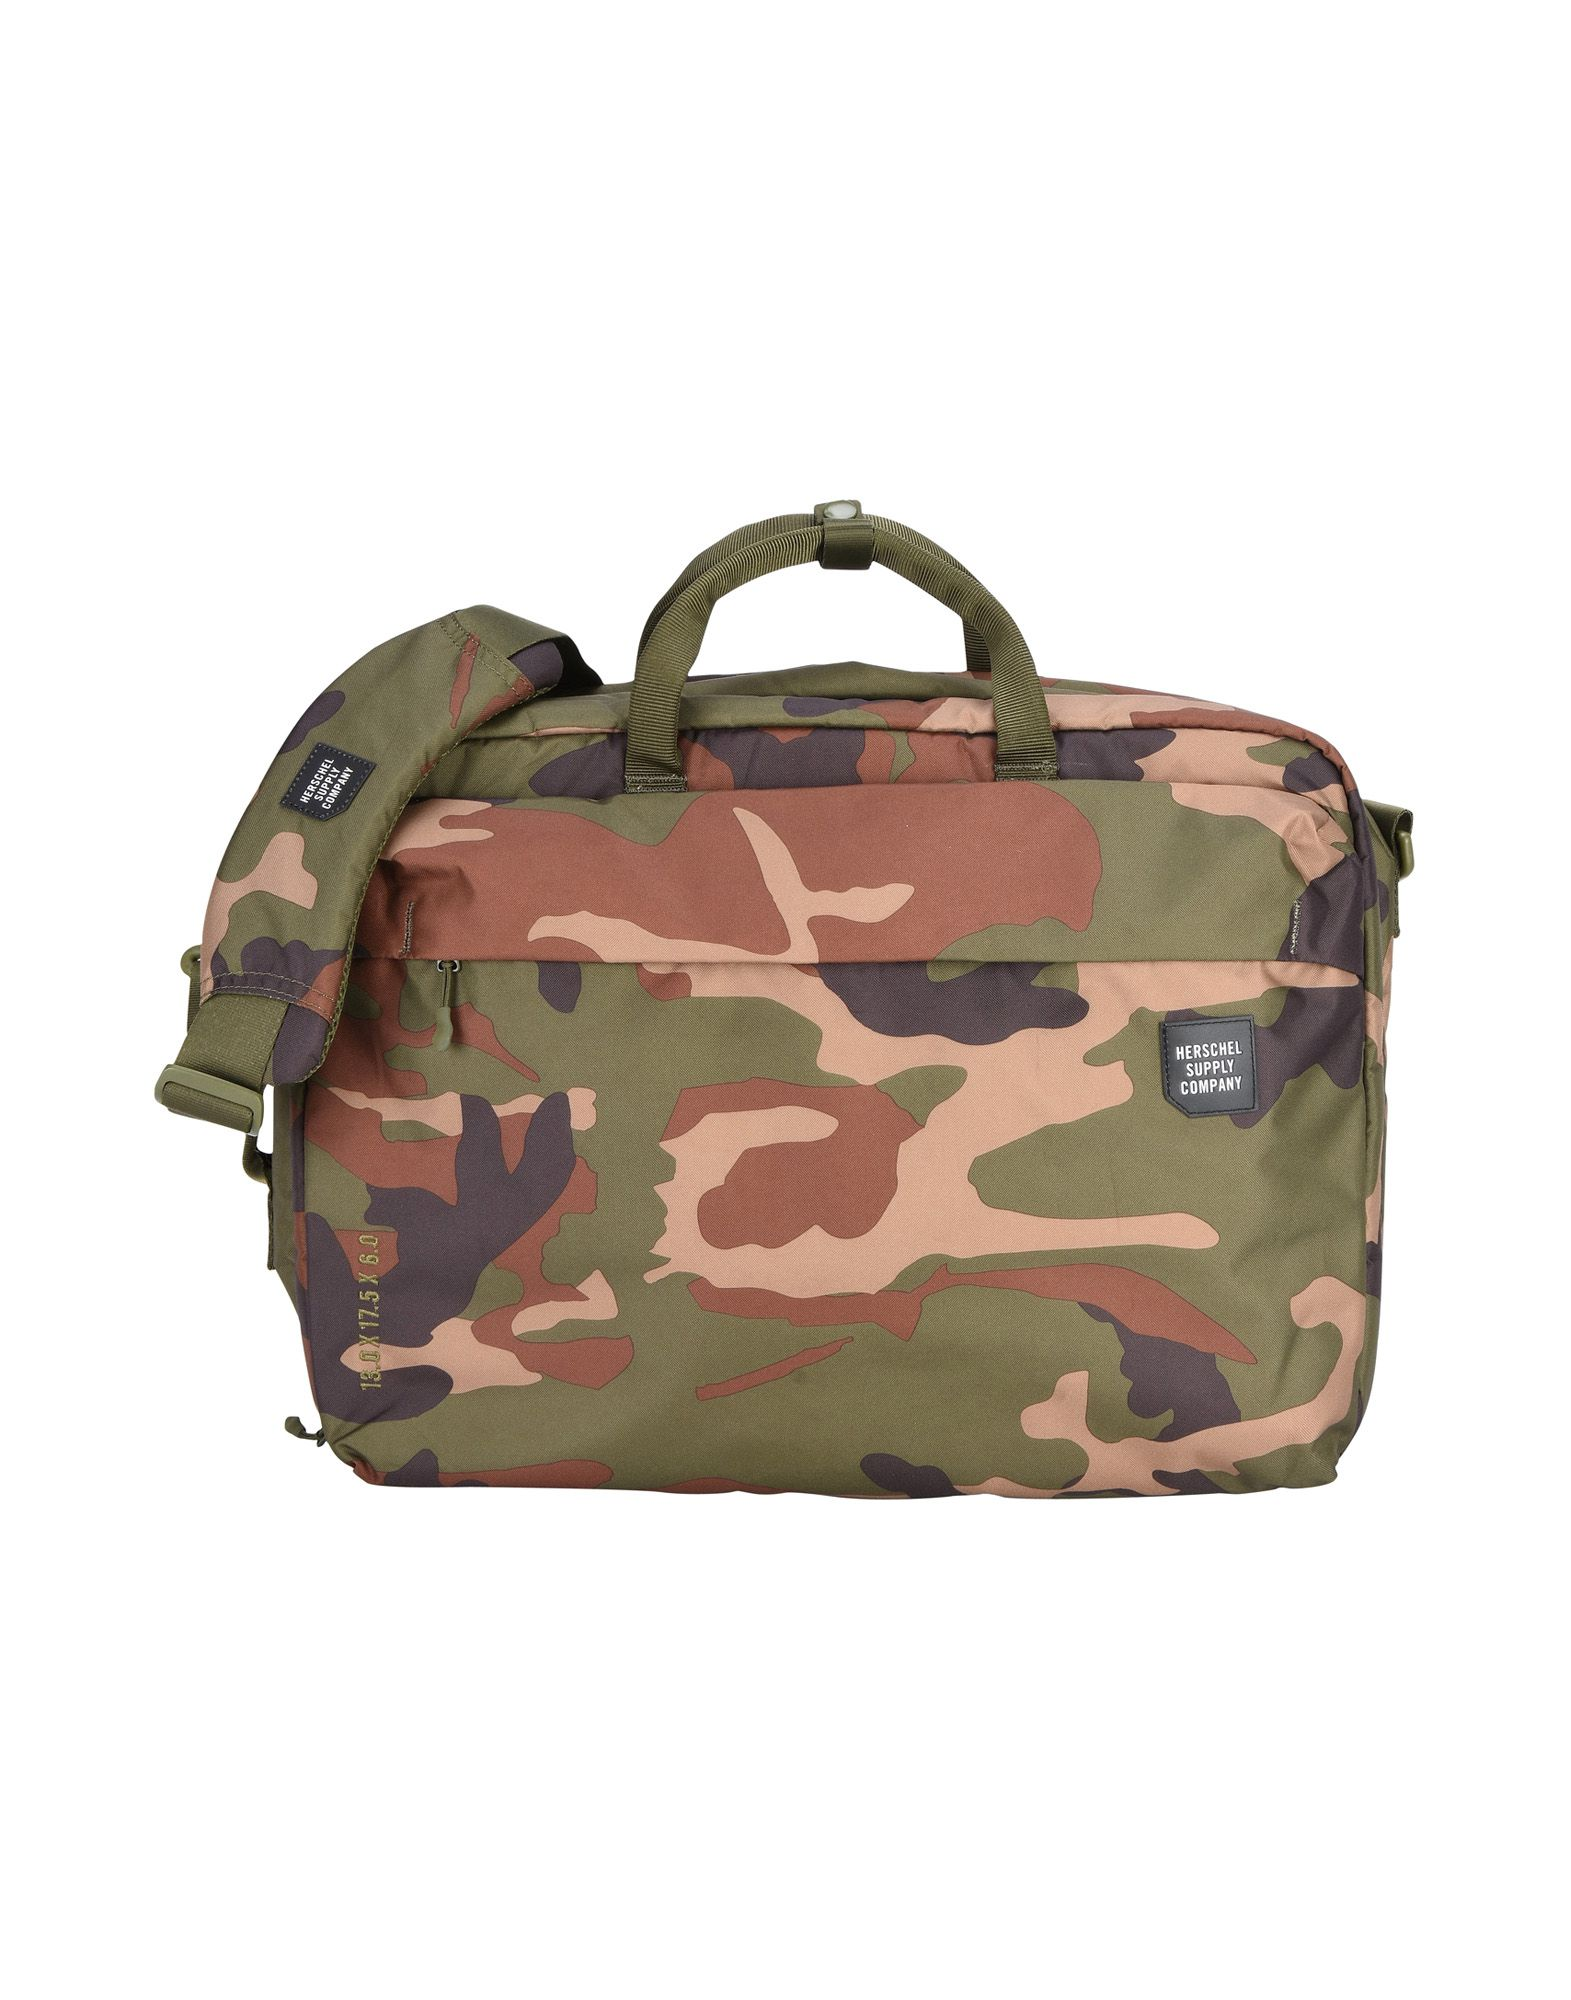 Borsa Da Lavoro Herschel Supply Co. Britannia Xl - Donna - Acquista online su